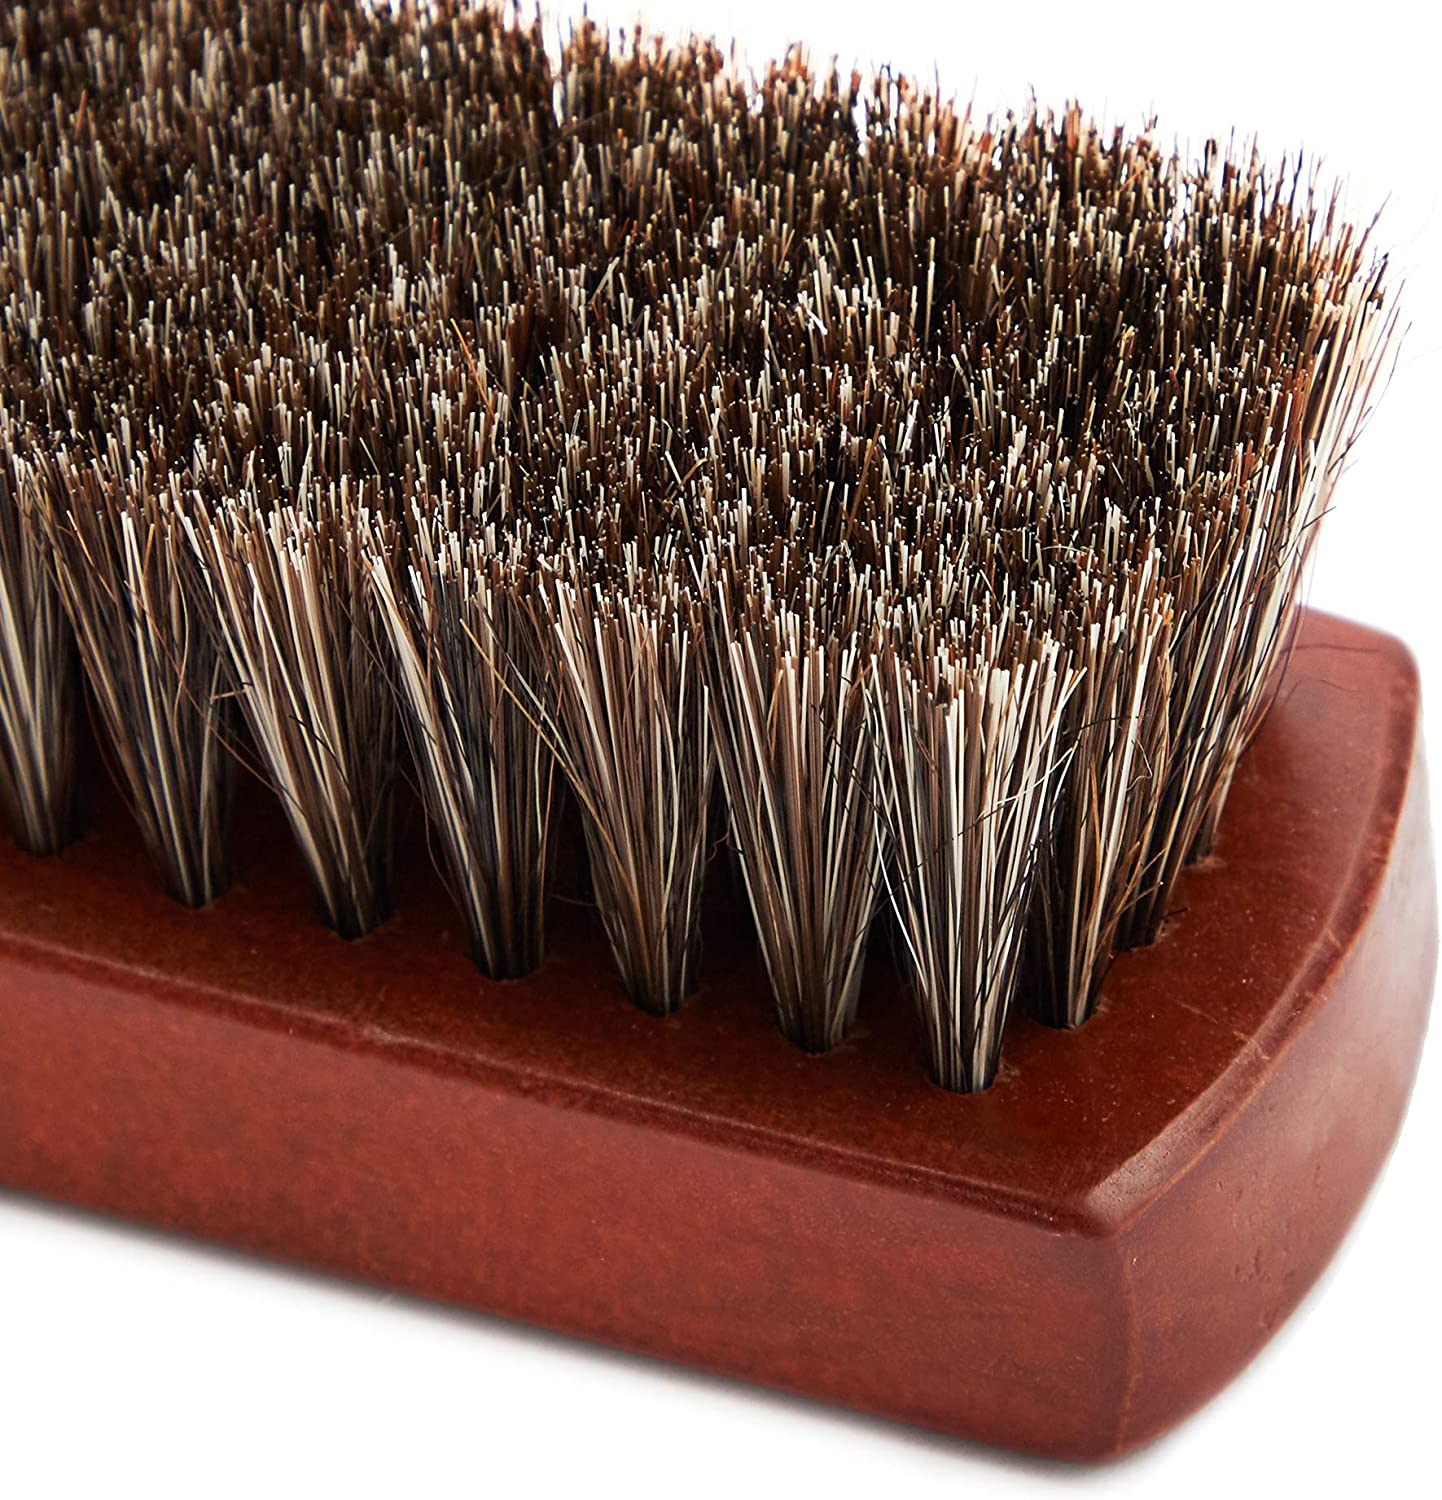 Horsehair Shoe Brush 7 x 1.9 x 1.75 Inches, Brown